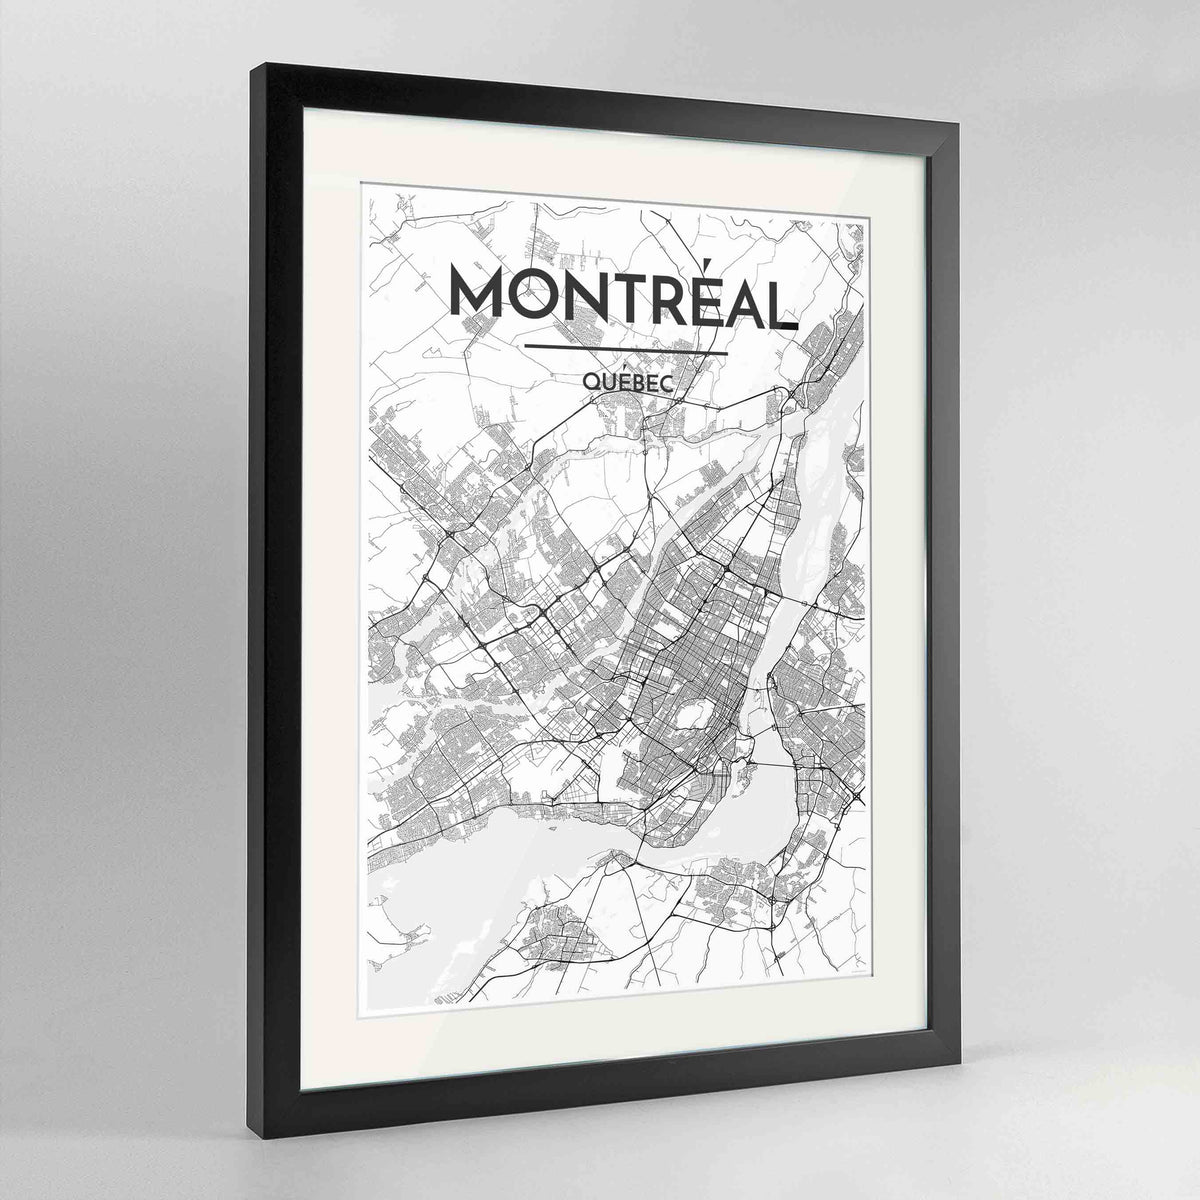 "Framed Montreal City Map 24x36"" Contemporary Black frame Point Two Design Group"